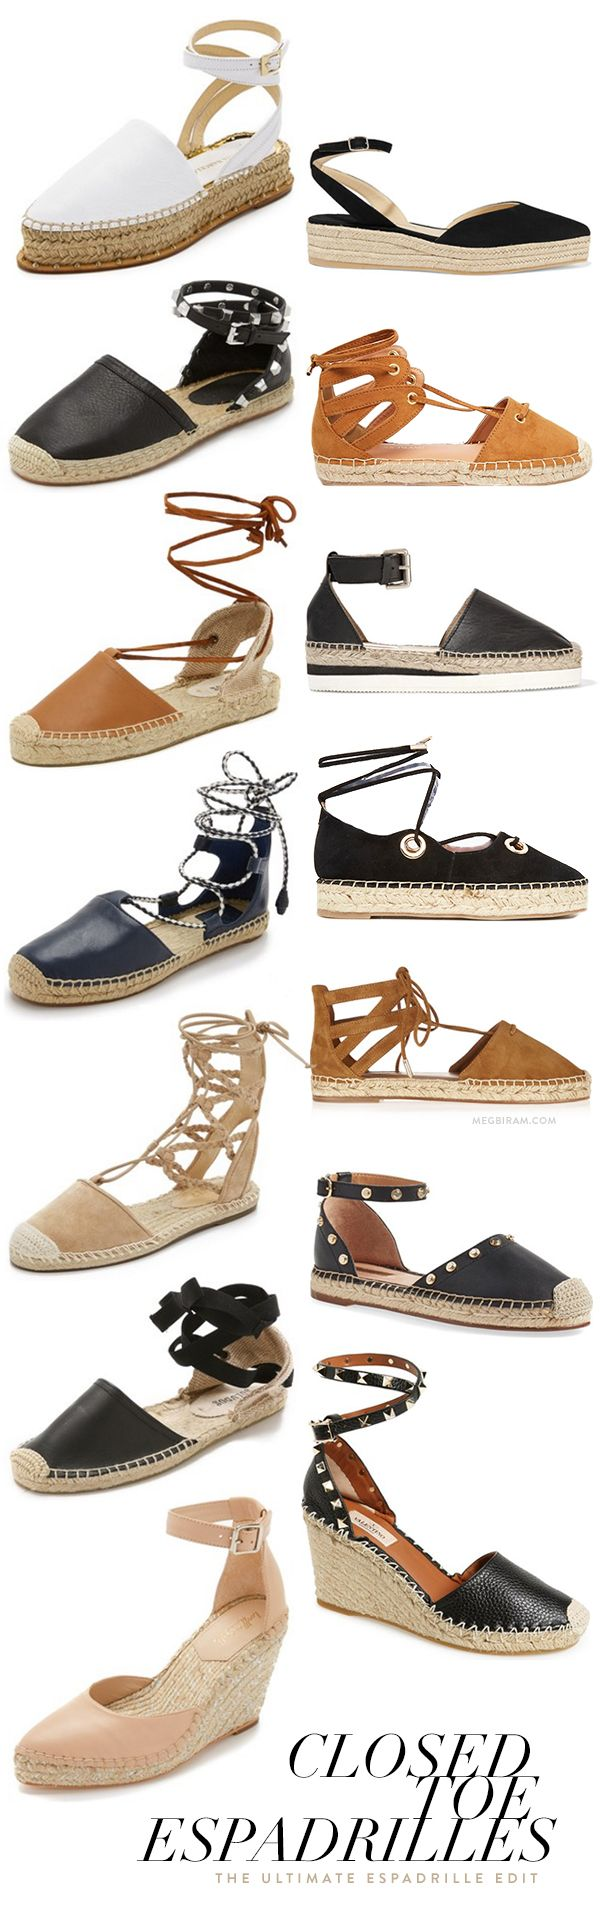 39 Espadrilles for Spring & Summer